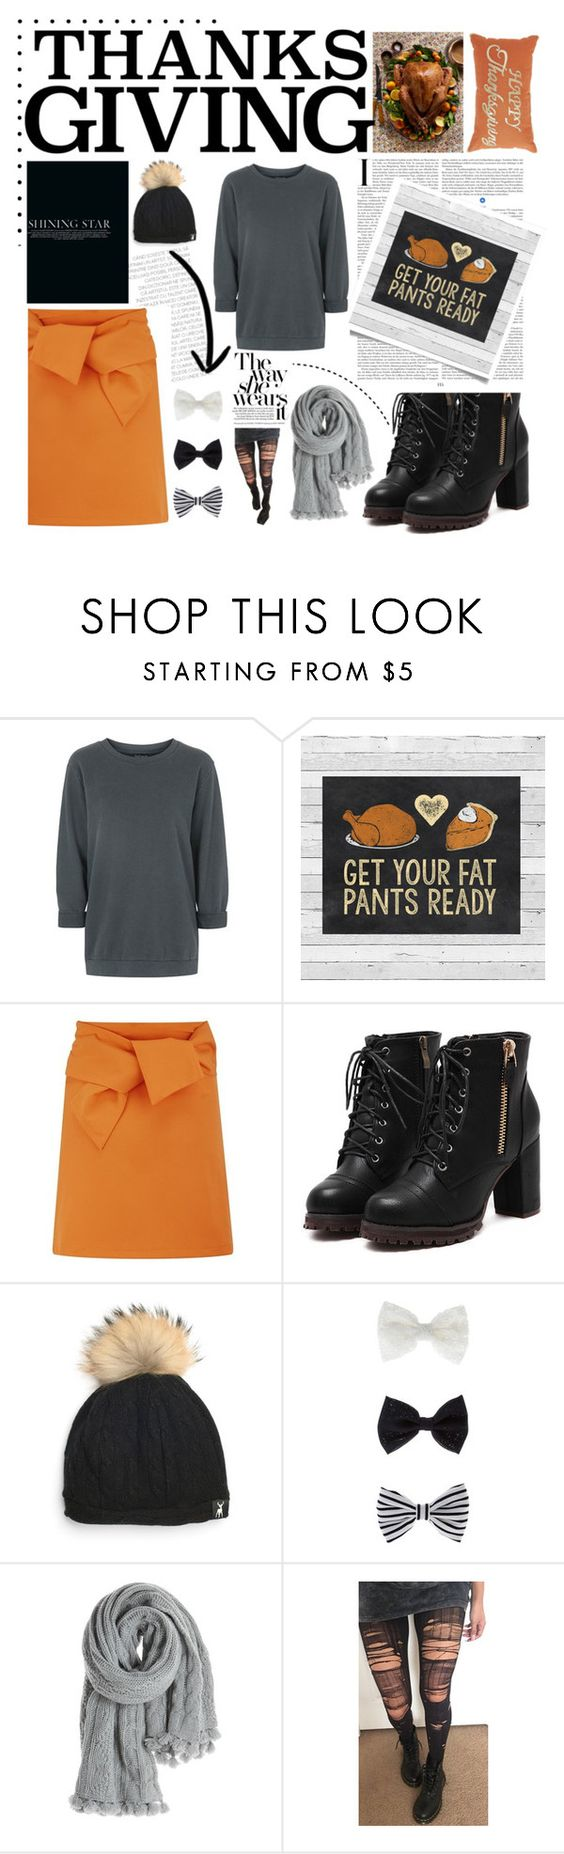 """""""home for thanksgiving. <3"""" by tatjana ❤ liked on Polyvore featuring Topshop, Lavish Alice, Accessorize, Calypso St. Barth, contestentry, thanksgiving and happythanksgiving"""